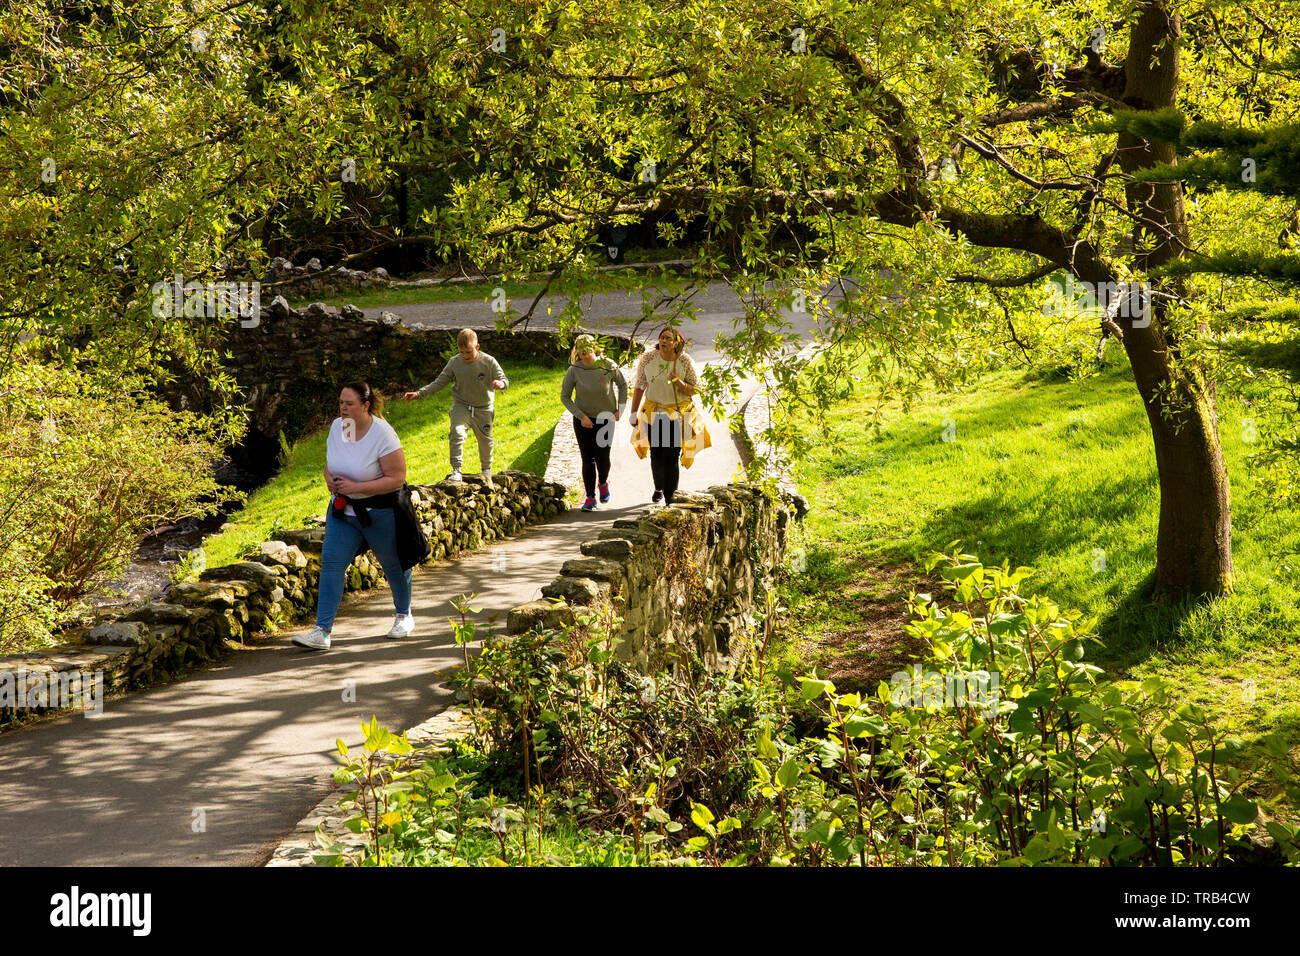 Northern Ireland, Co Down, Bryansford, Tollymore Forest Park, family walking through landscaped parkland Stock Photo